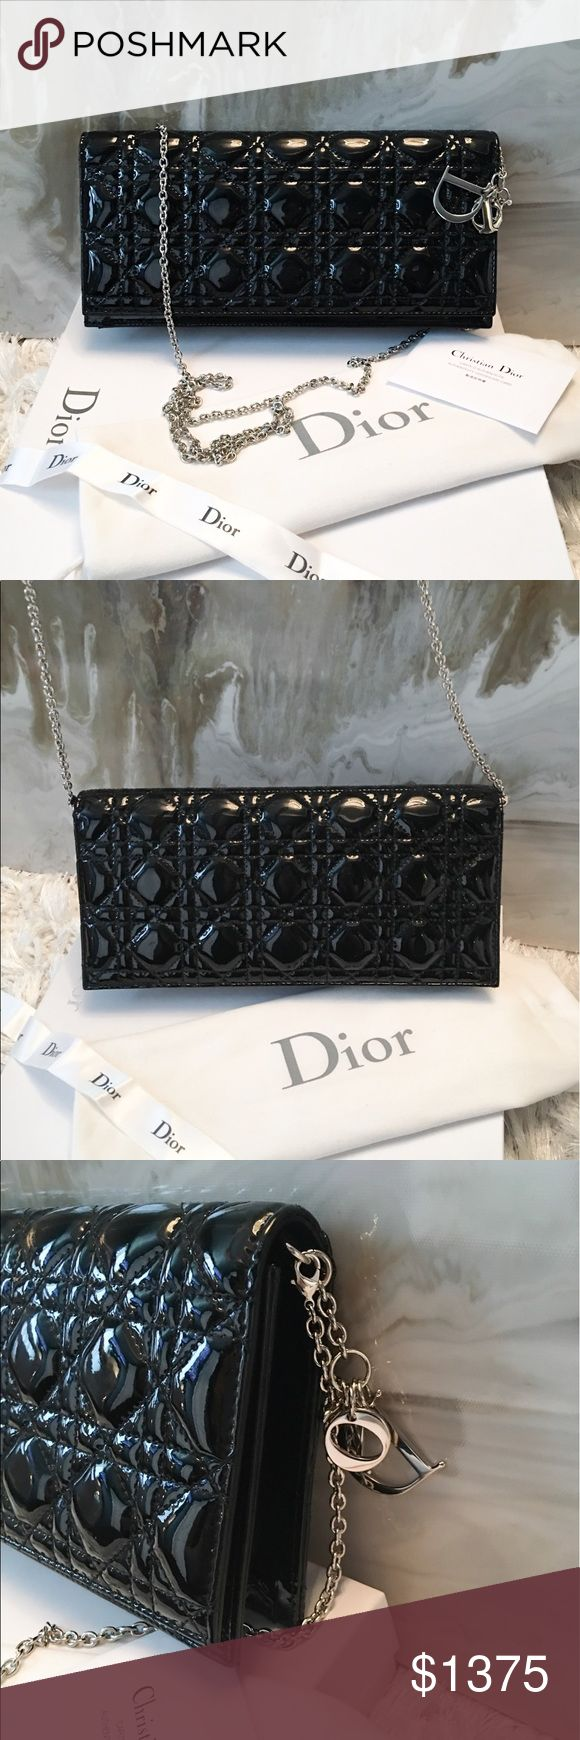 """Dior Lady Dior Patent Black Cannage Chain Clutch Authentic Christian Dior Patent Black Lady Dior Cannage Convertible Clutch Bag.  Signature Dior logo charm at side, detachable silver chain strap that can be worn as a Crossbody, Cannage stitched pattern throughout clutch, snap flap closure. Excellent condition. Comes with dust bag & will provide box shown for protection. Measures approx 10.5"""" x 5"""" Dior Bags Clutches & Wristlets"""